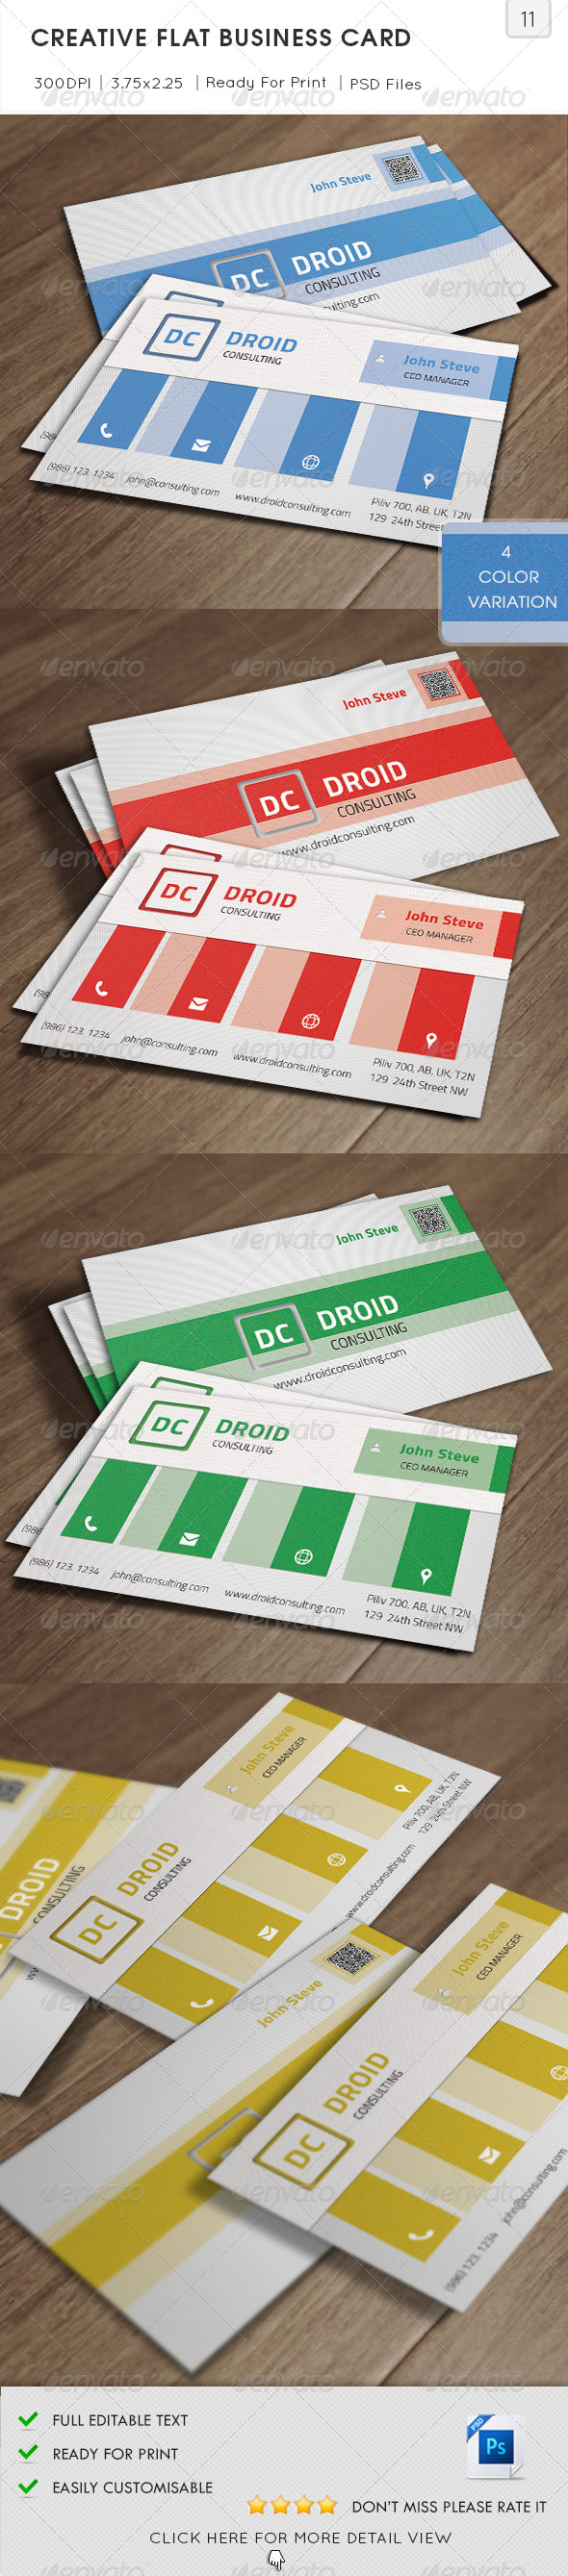 GraphicRiver Creative Flat Business Card v11 5724583